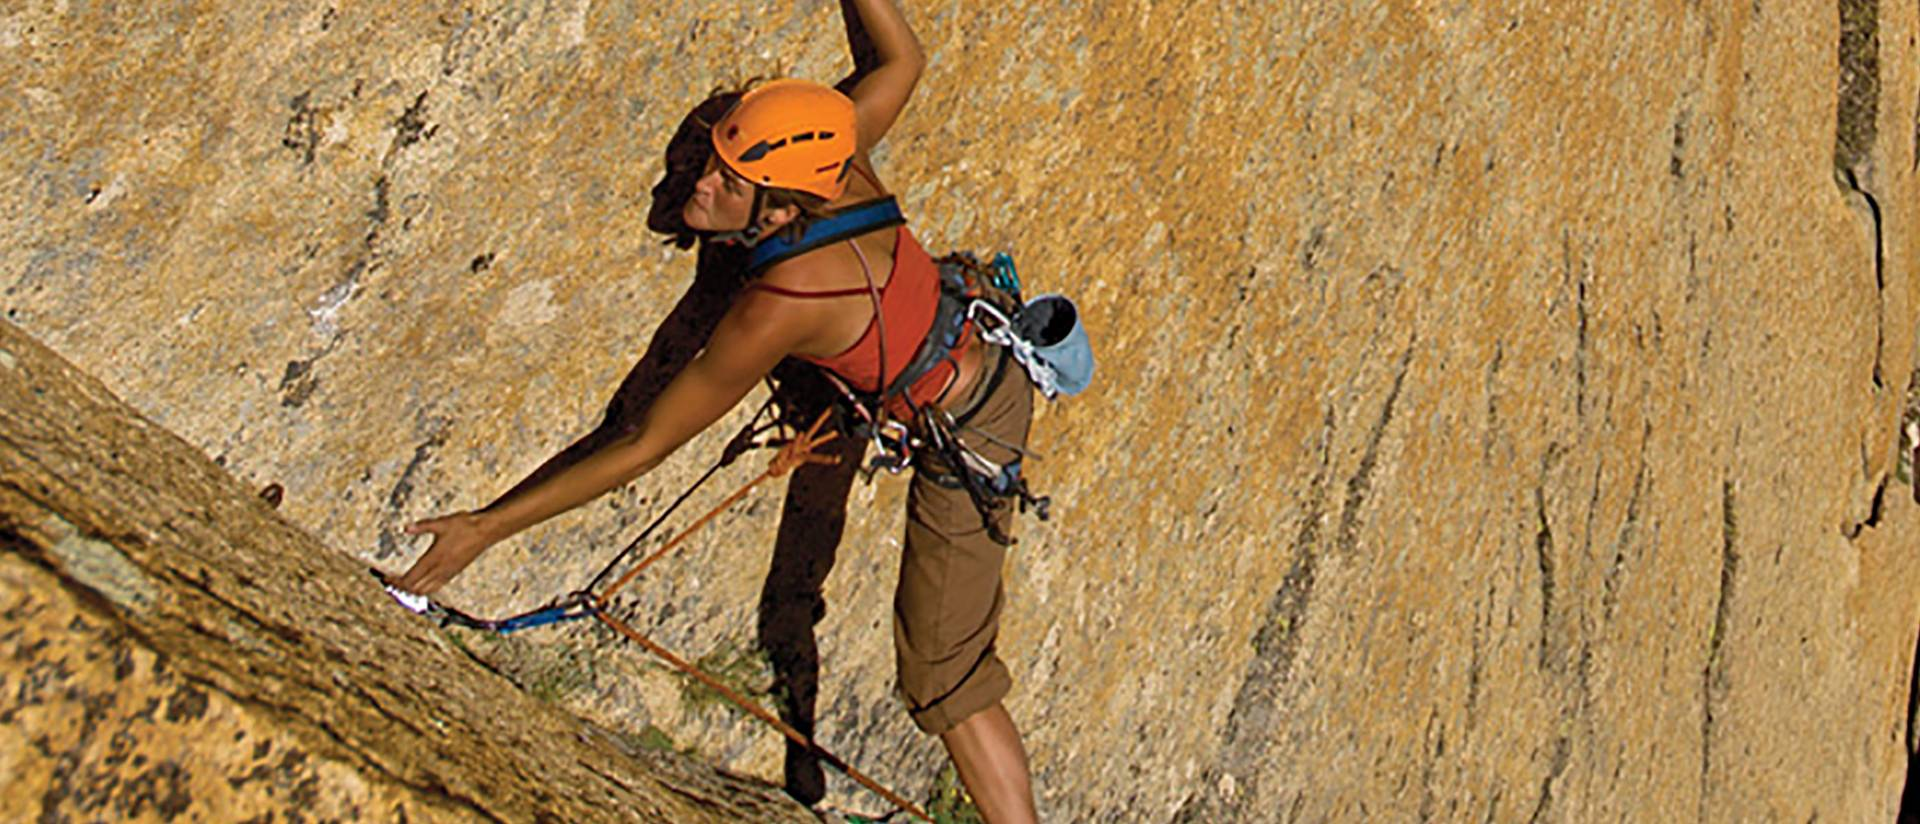 Rock-climbing alumna scales new heights